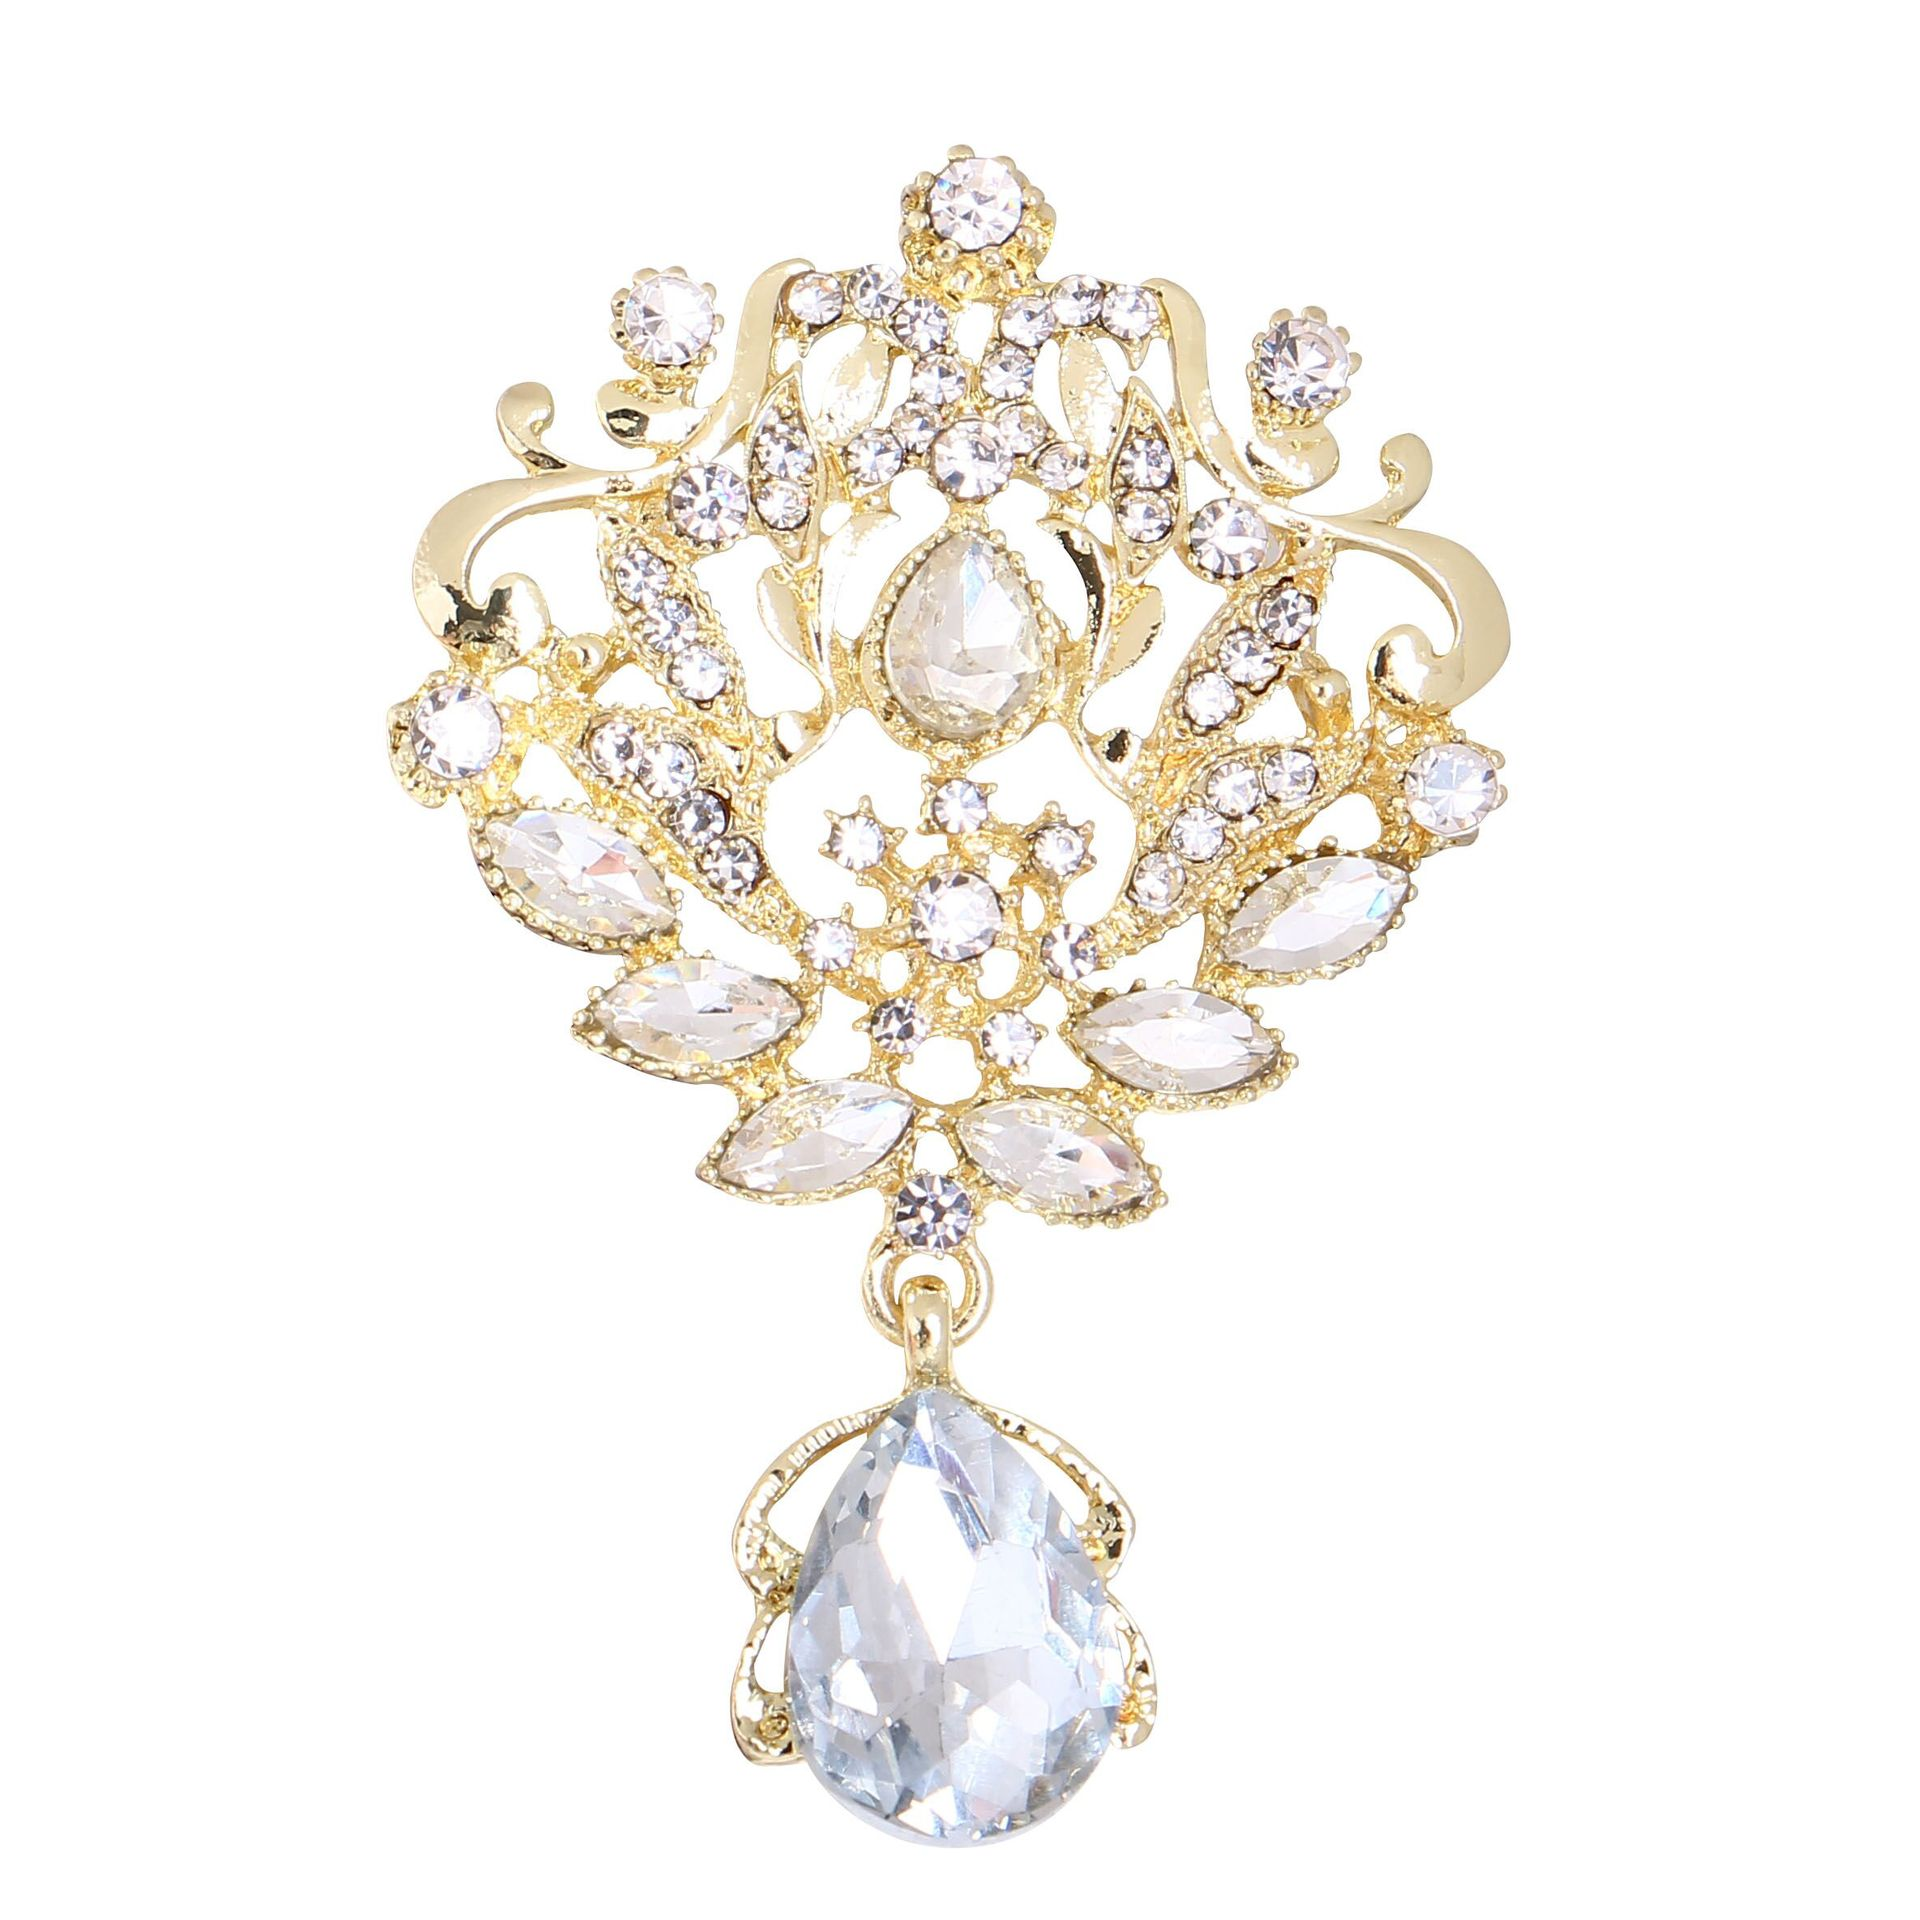 Beautiful Crystal Brooch for Decorous Wardrobe Accessories